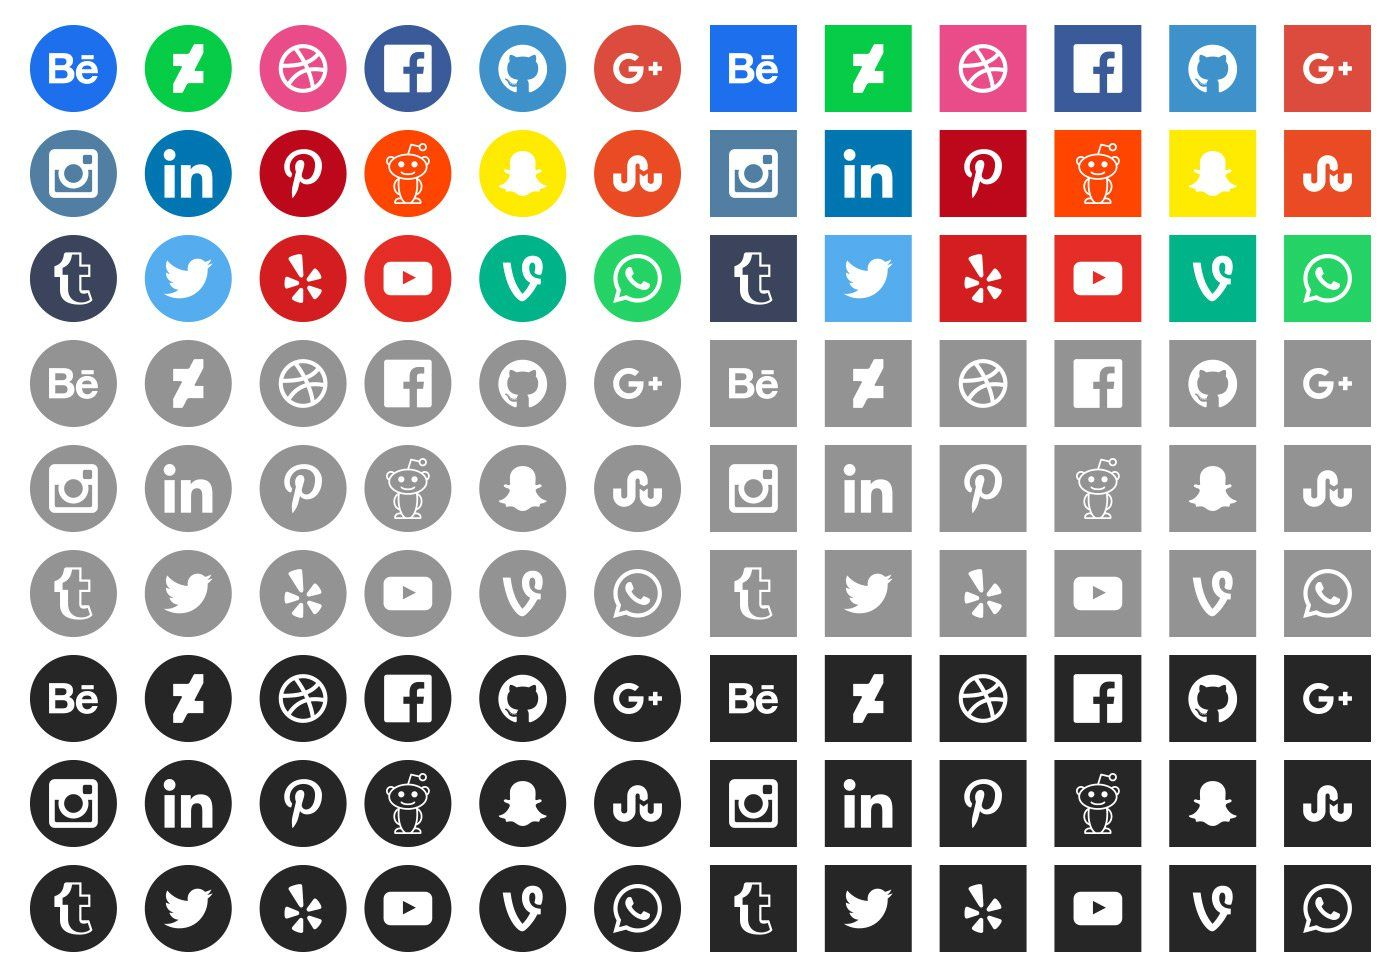 50+ High Quality Free Social Media Icons Social media